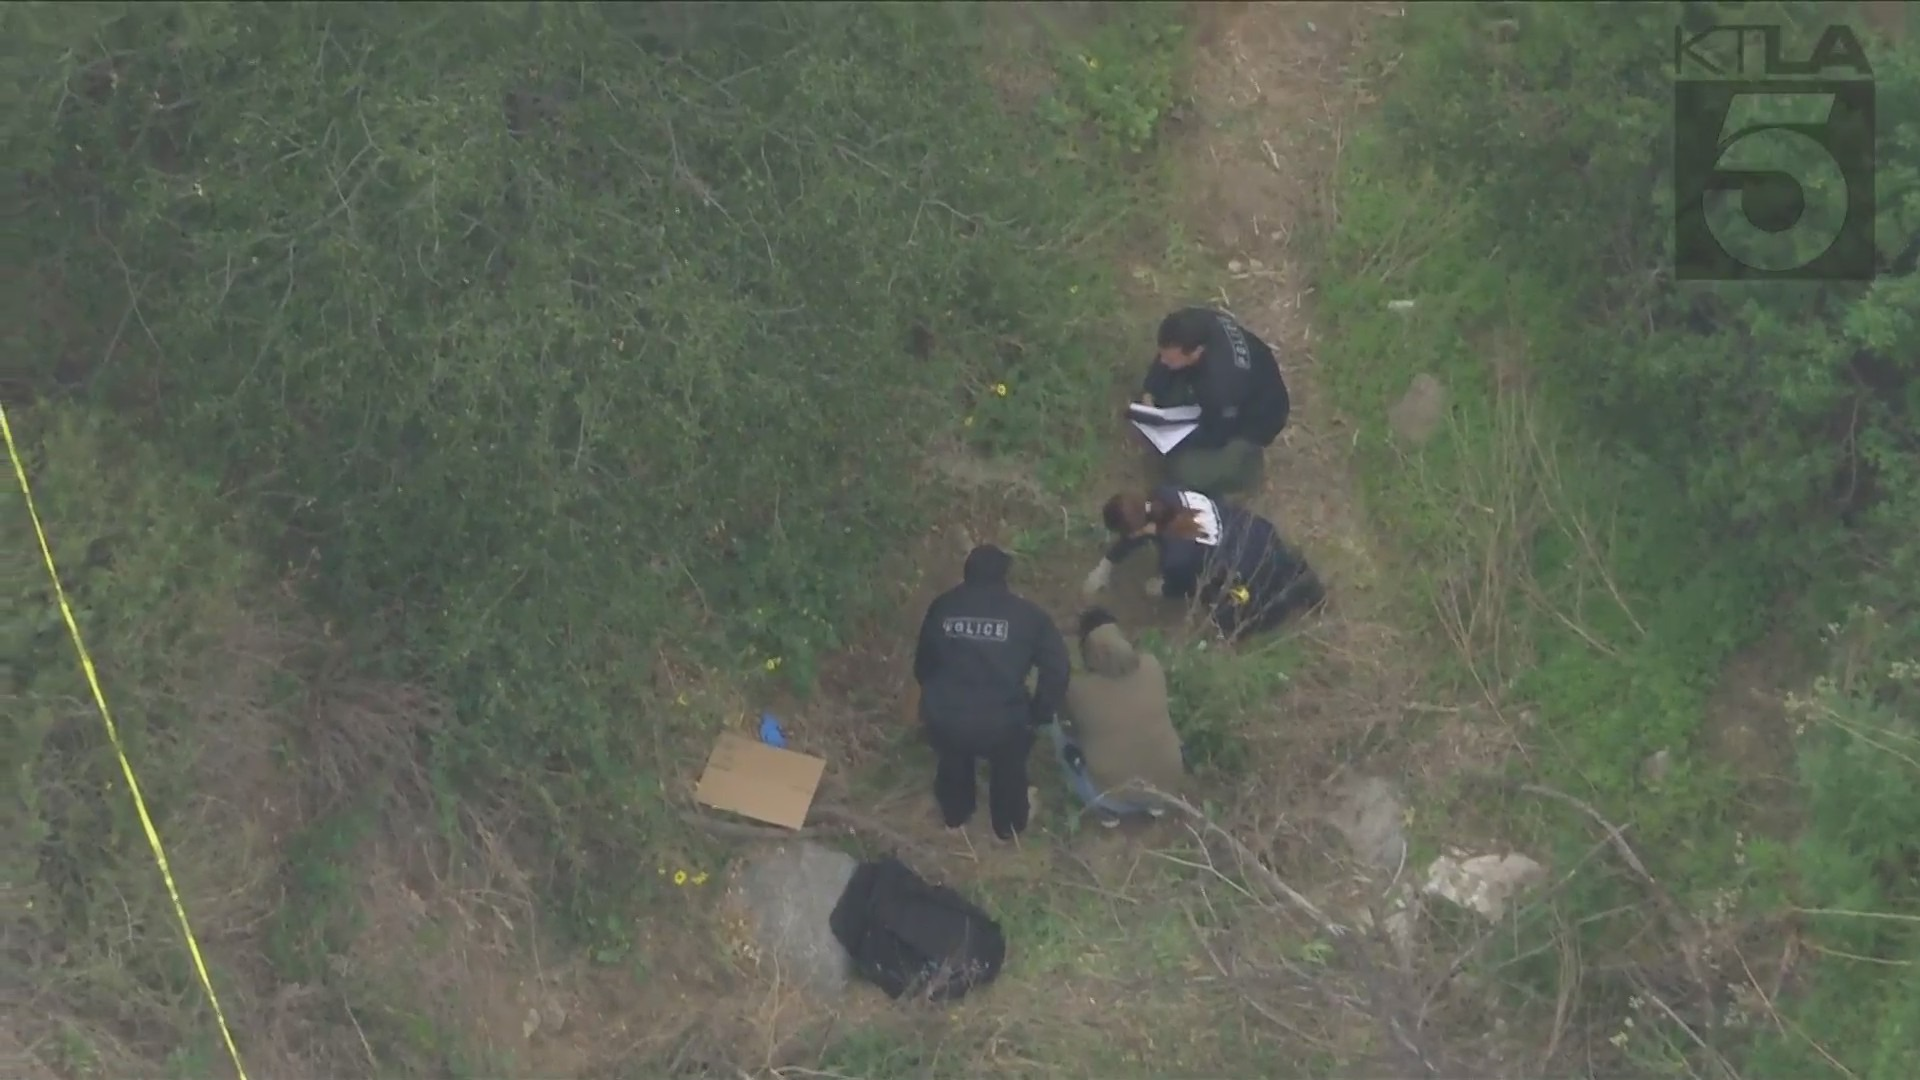 Possible human remains were found in Burbank on April 22, 2021. (KTLA)